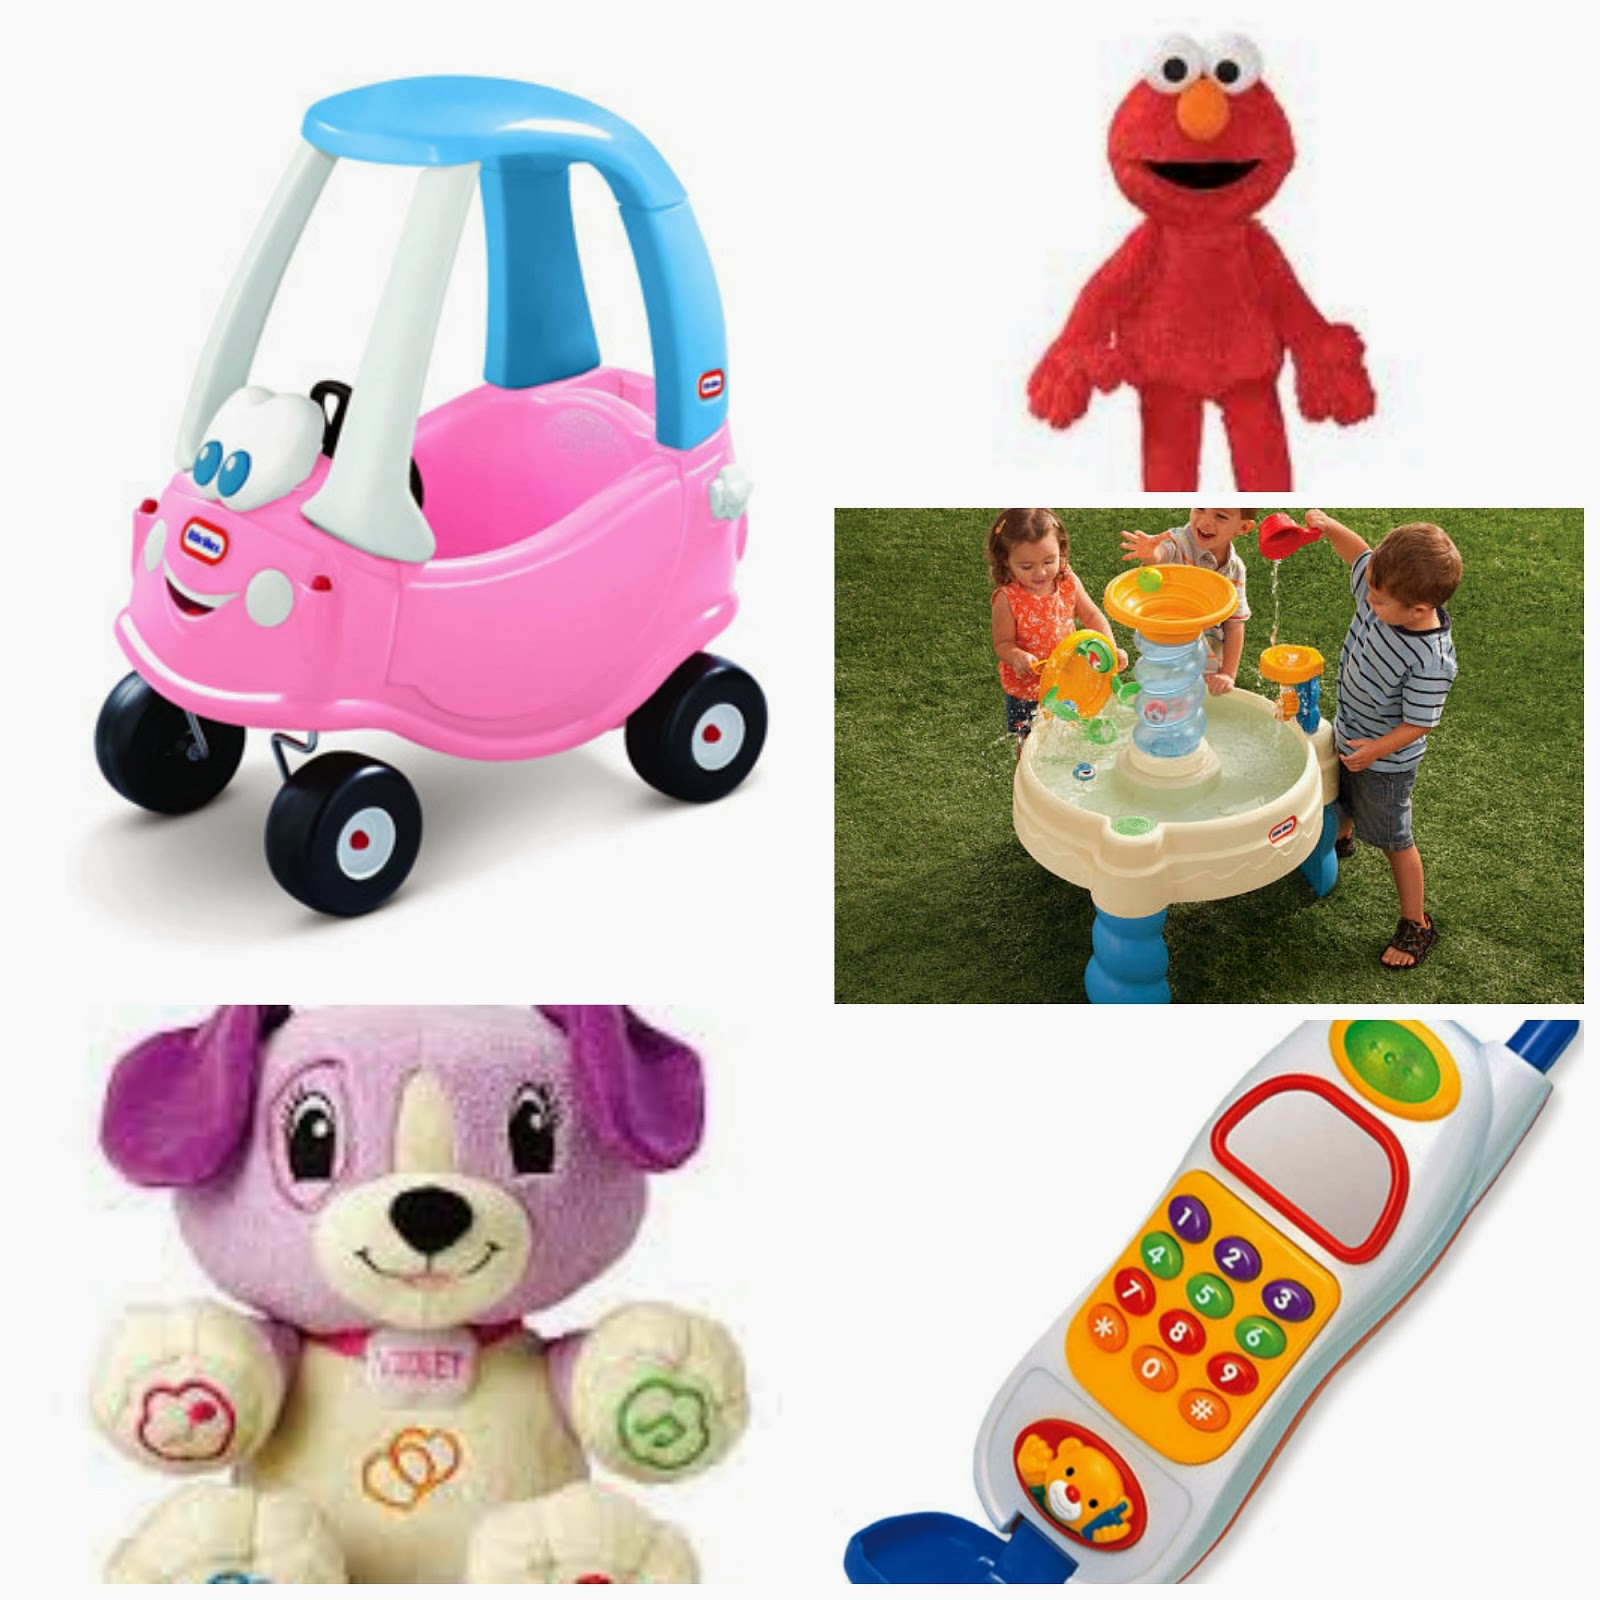 Gifts Ideas for a 1 Year Old Girl Building Our Story